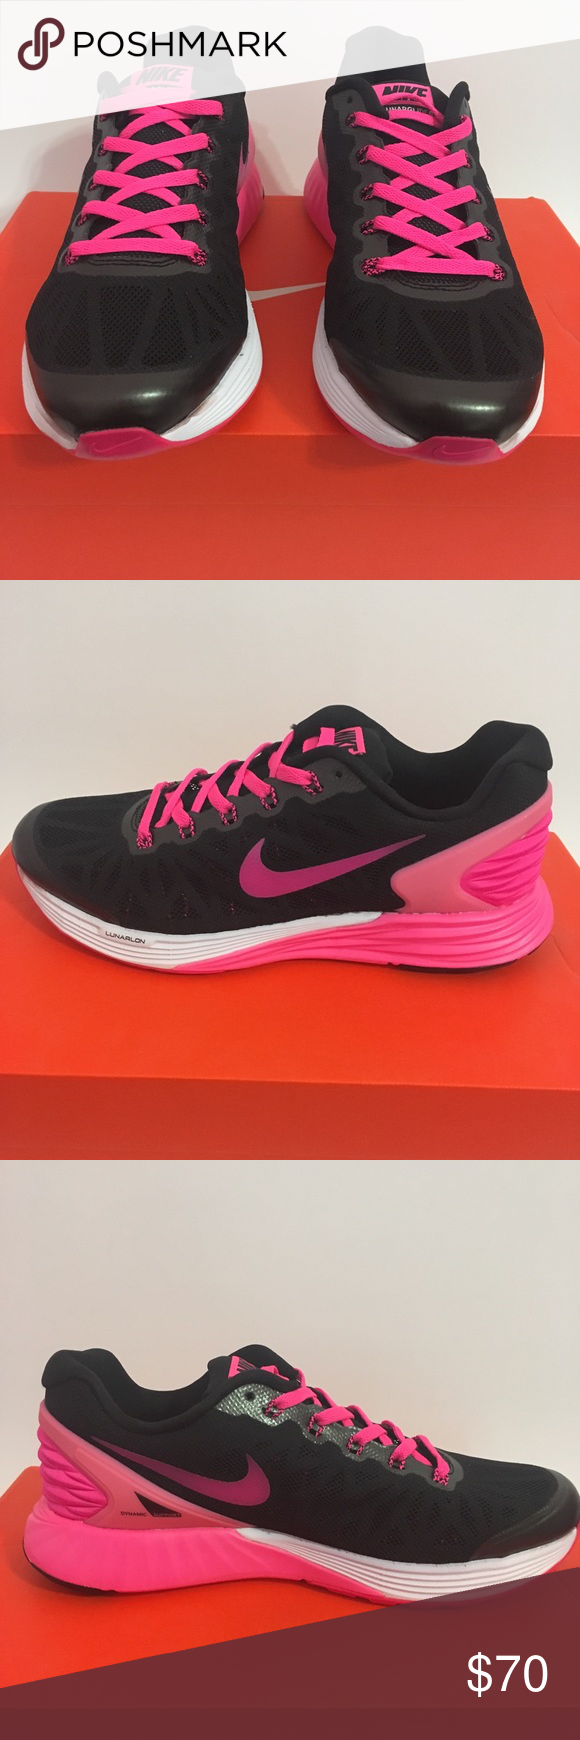 buy online 3b64b e62fd Nike Lunarglide 6 Size 5Y Youth Girls Womens 100% Authentic shoes. Brand  new with box and never worn. I will add extra pink shoe laces for free.